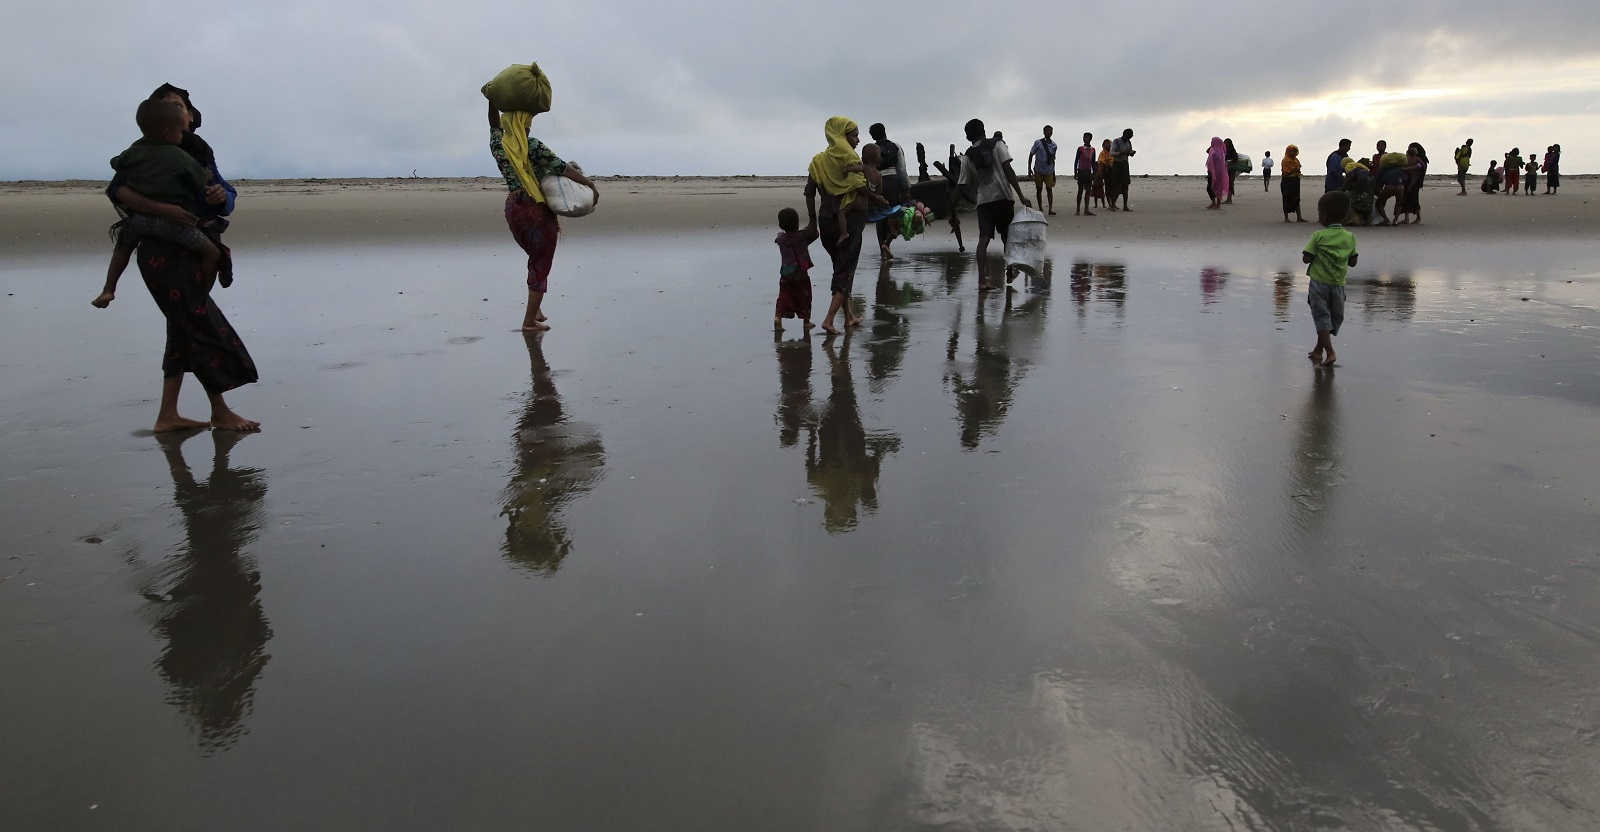 Rohingya Muslims make their way through a beach in Teknaff, Bangladesh. (Photo: Zakir Hossain Chowdhury/Getty Images)